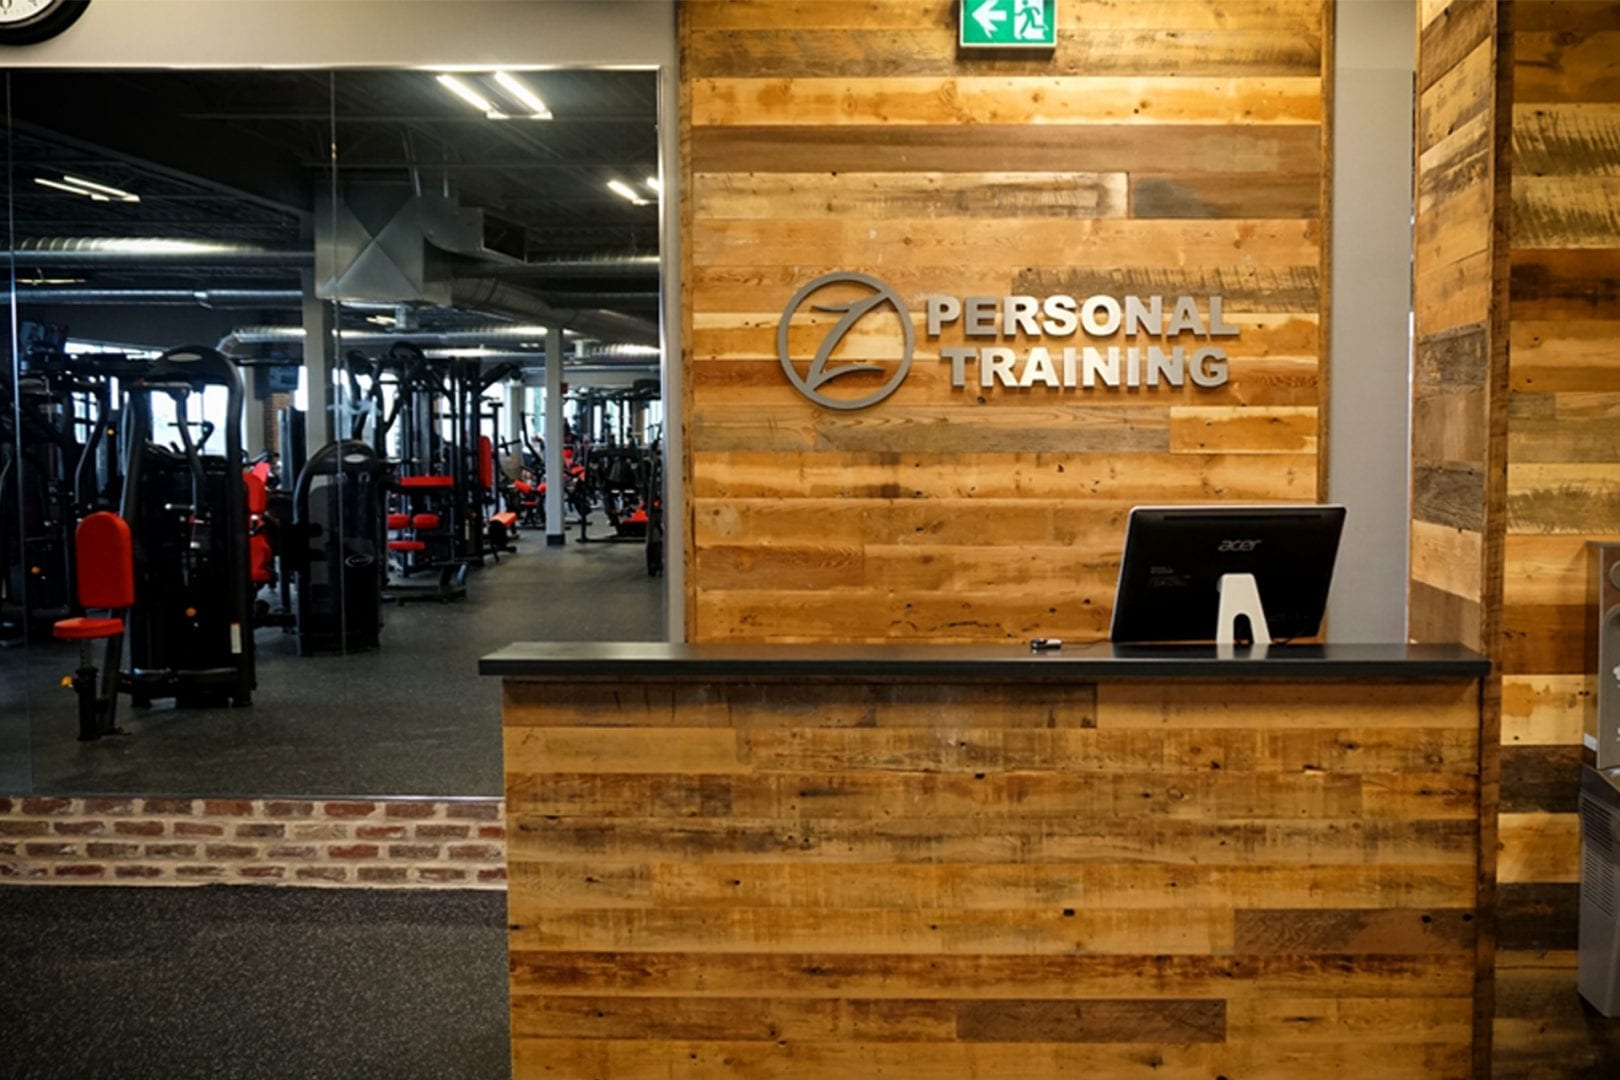 personal-training-section-area-of-gym